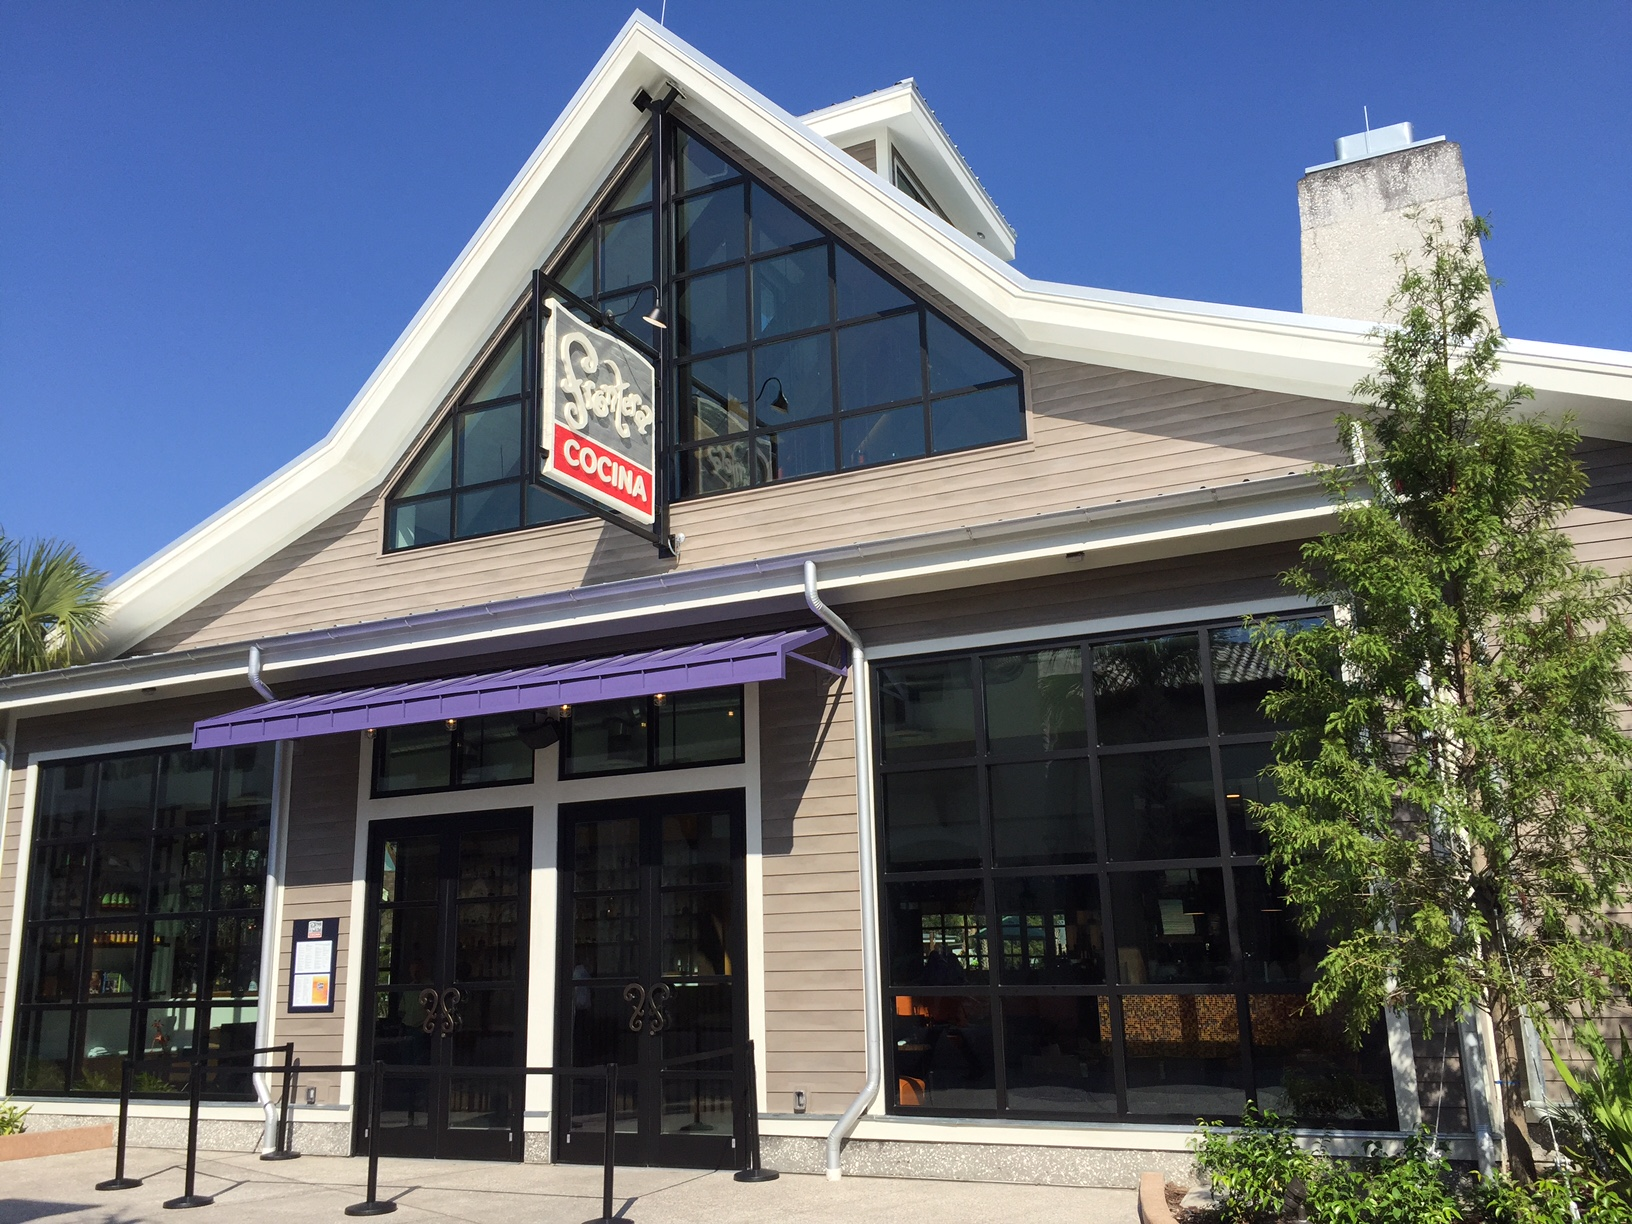 Frontera Cocina Restaurant Opens in Town Center